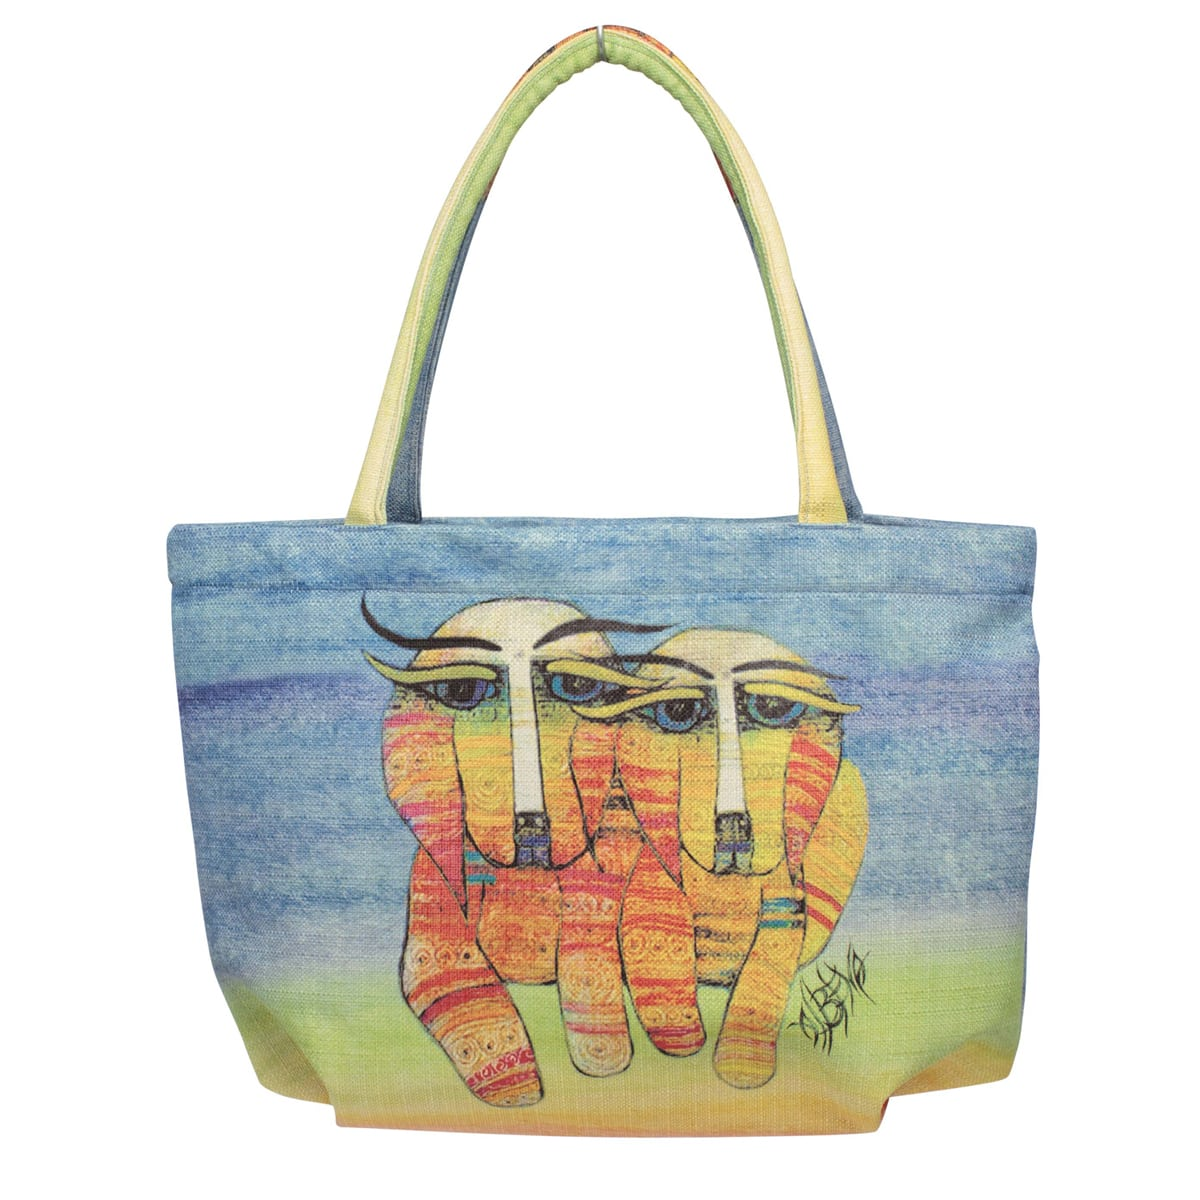 Dog Totes for Dog Lovers - Bubble Handbag with Dog Art by Albena